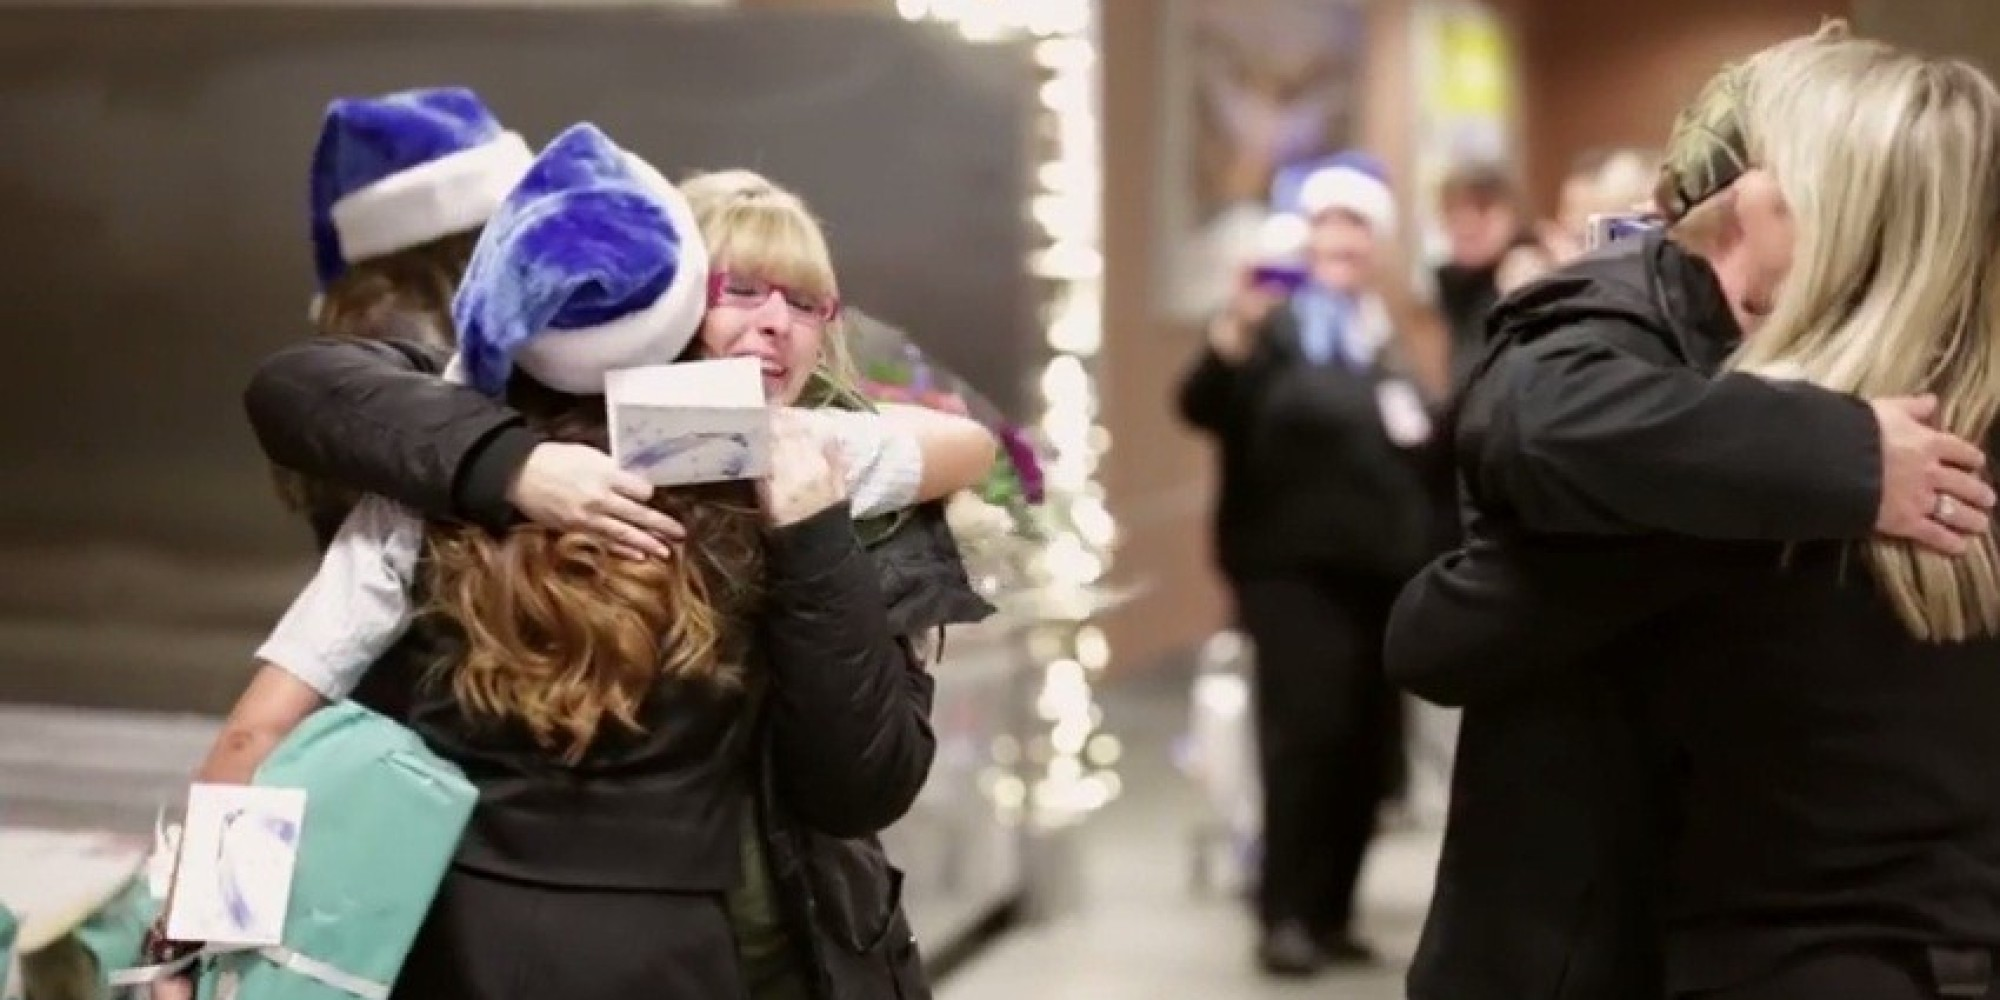 CALGARY, Dec. 8 /CNW/ - WestJet today shared its top holiday travel tips to help guests enjoy a smooth travel experience during the airline's busiest time of year.